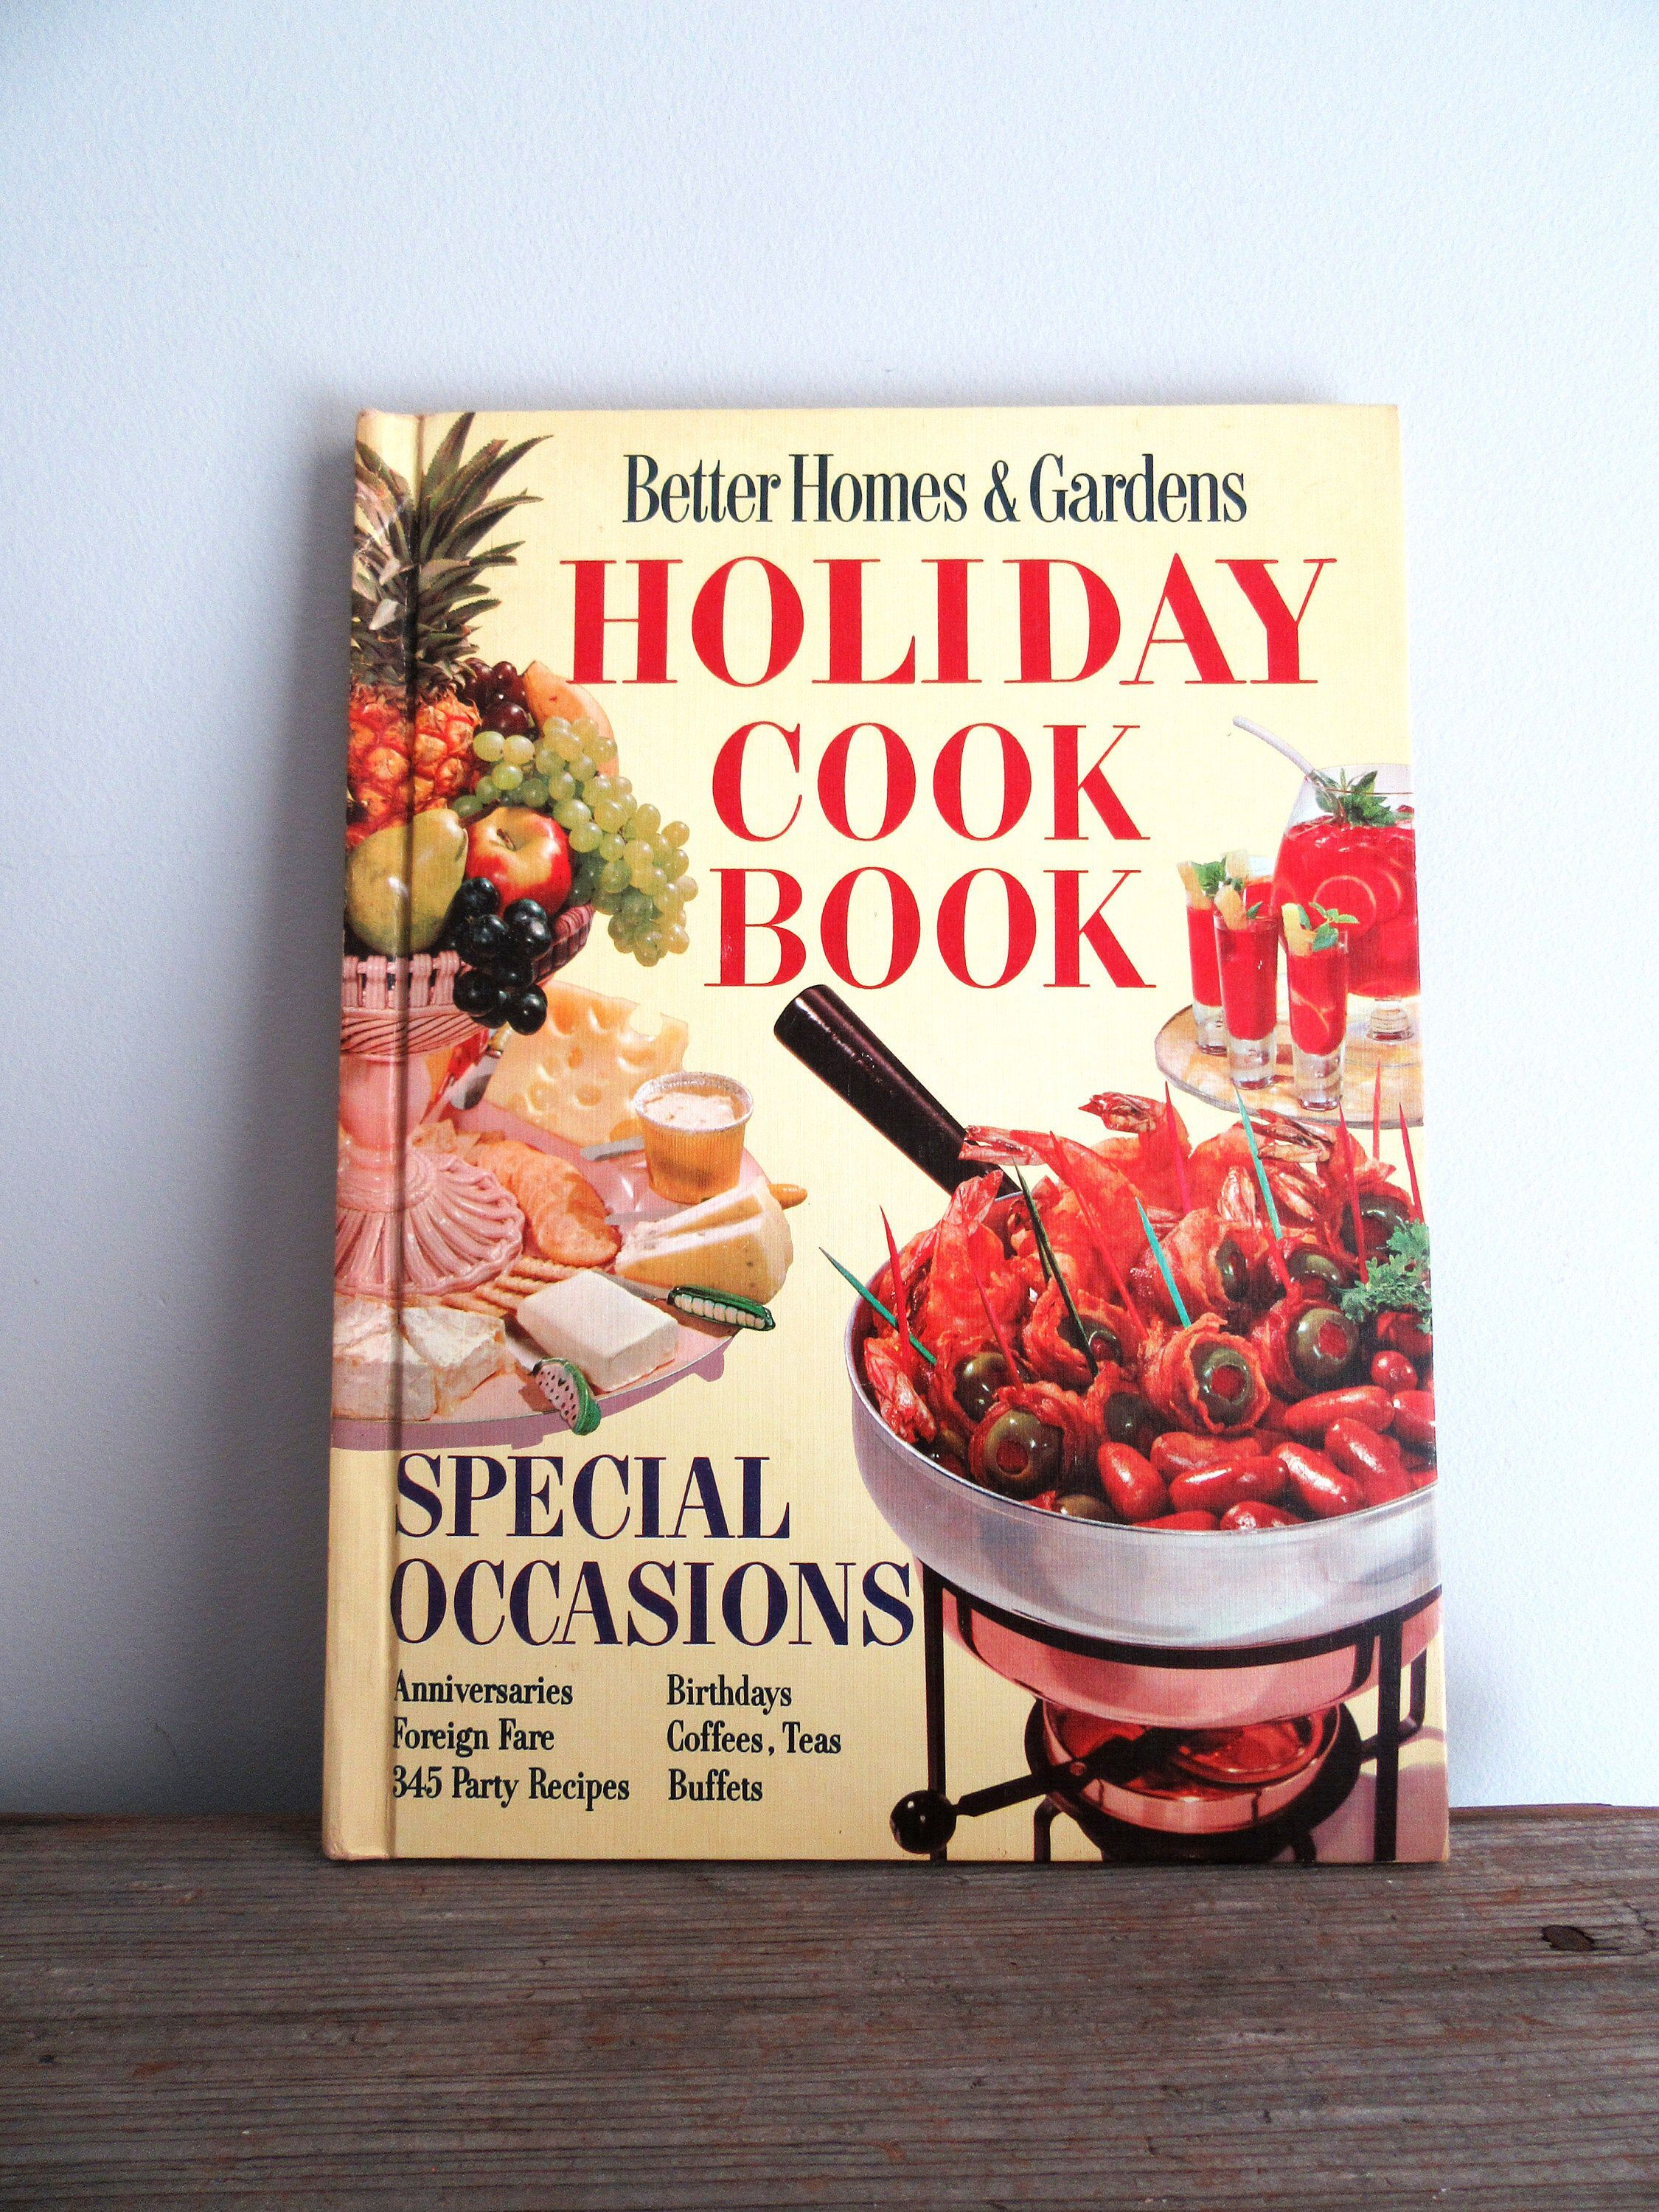 cf9a826a5ee41b399a455380491581e1 - Better Homes And Gardens Holiday Cookbook